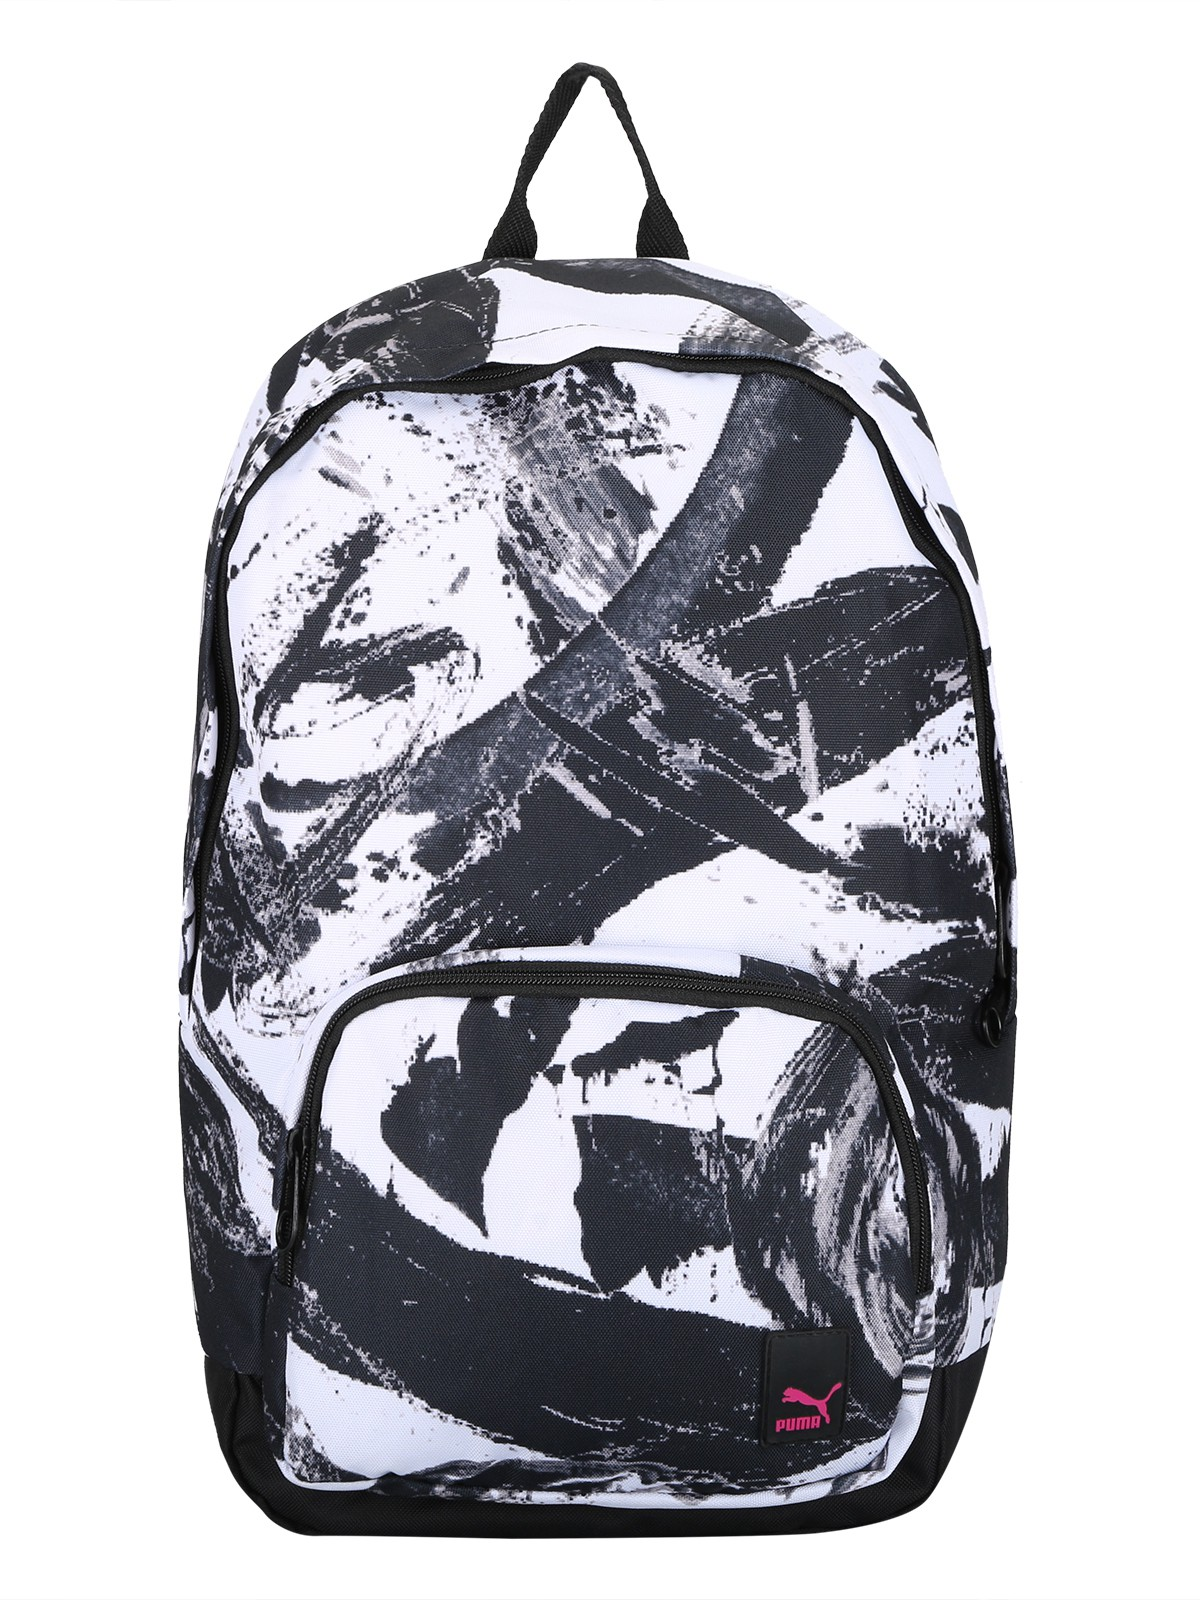 Deals - Raipur - Skybags, Nike... <br> Backpacks<br> Category - bags_wallets_belts<br> Business - Flipkart.com